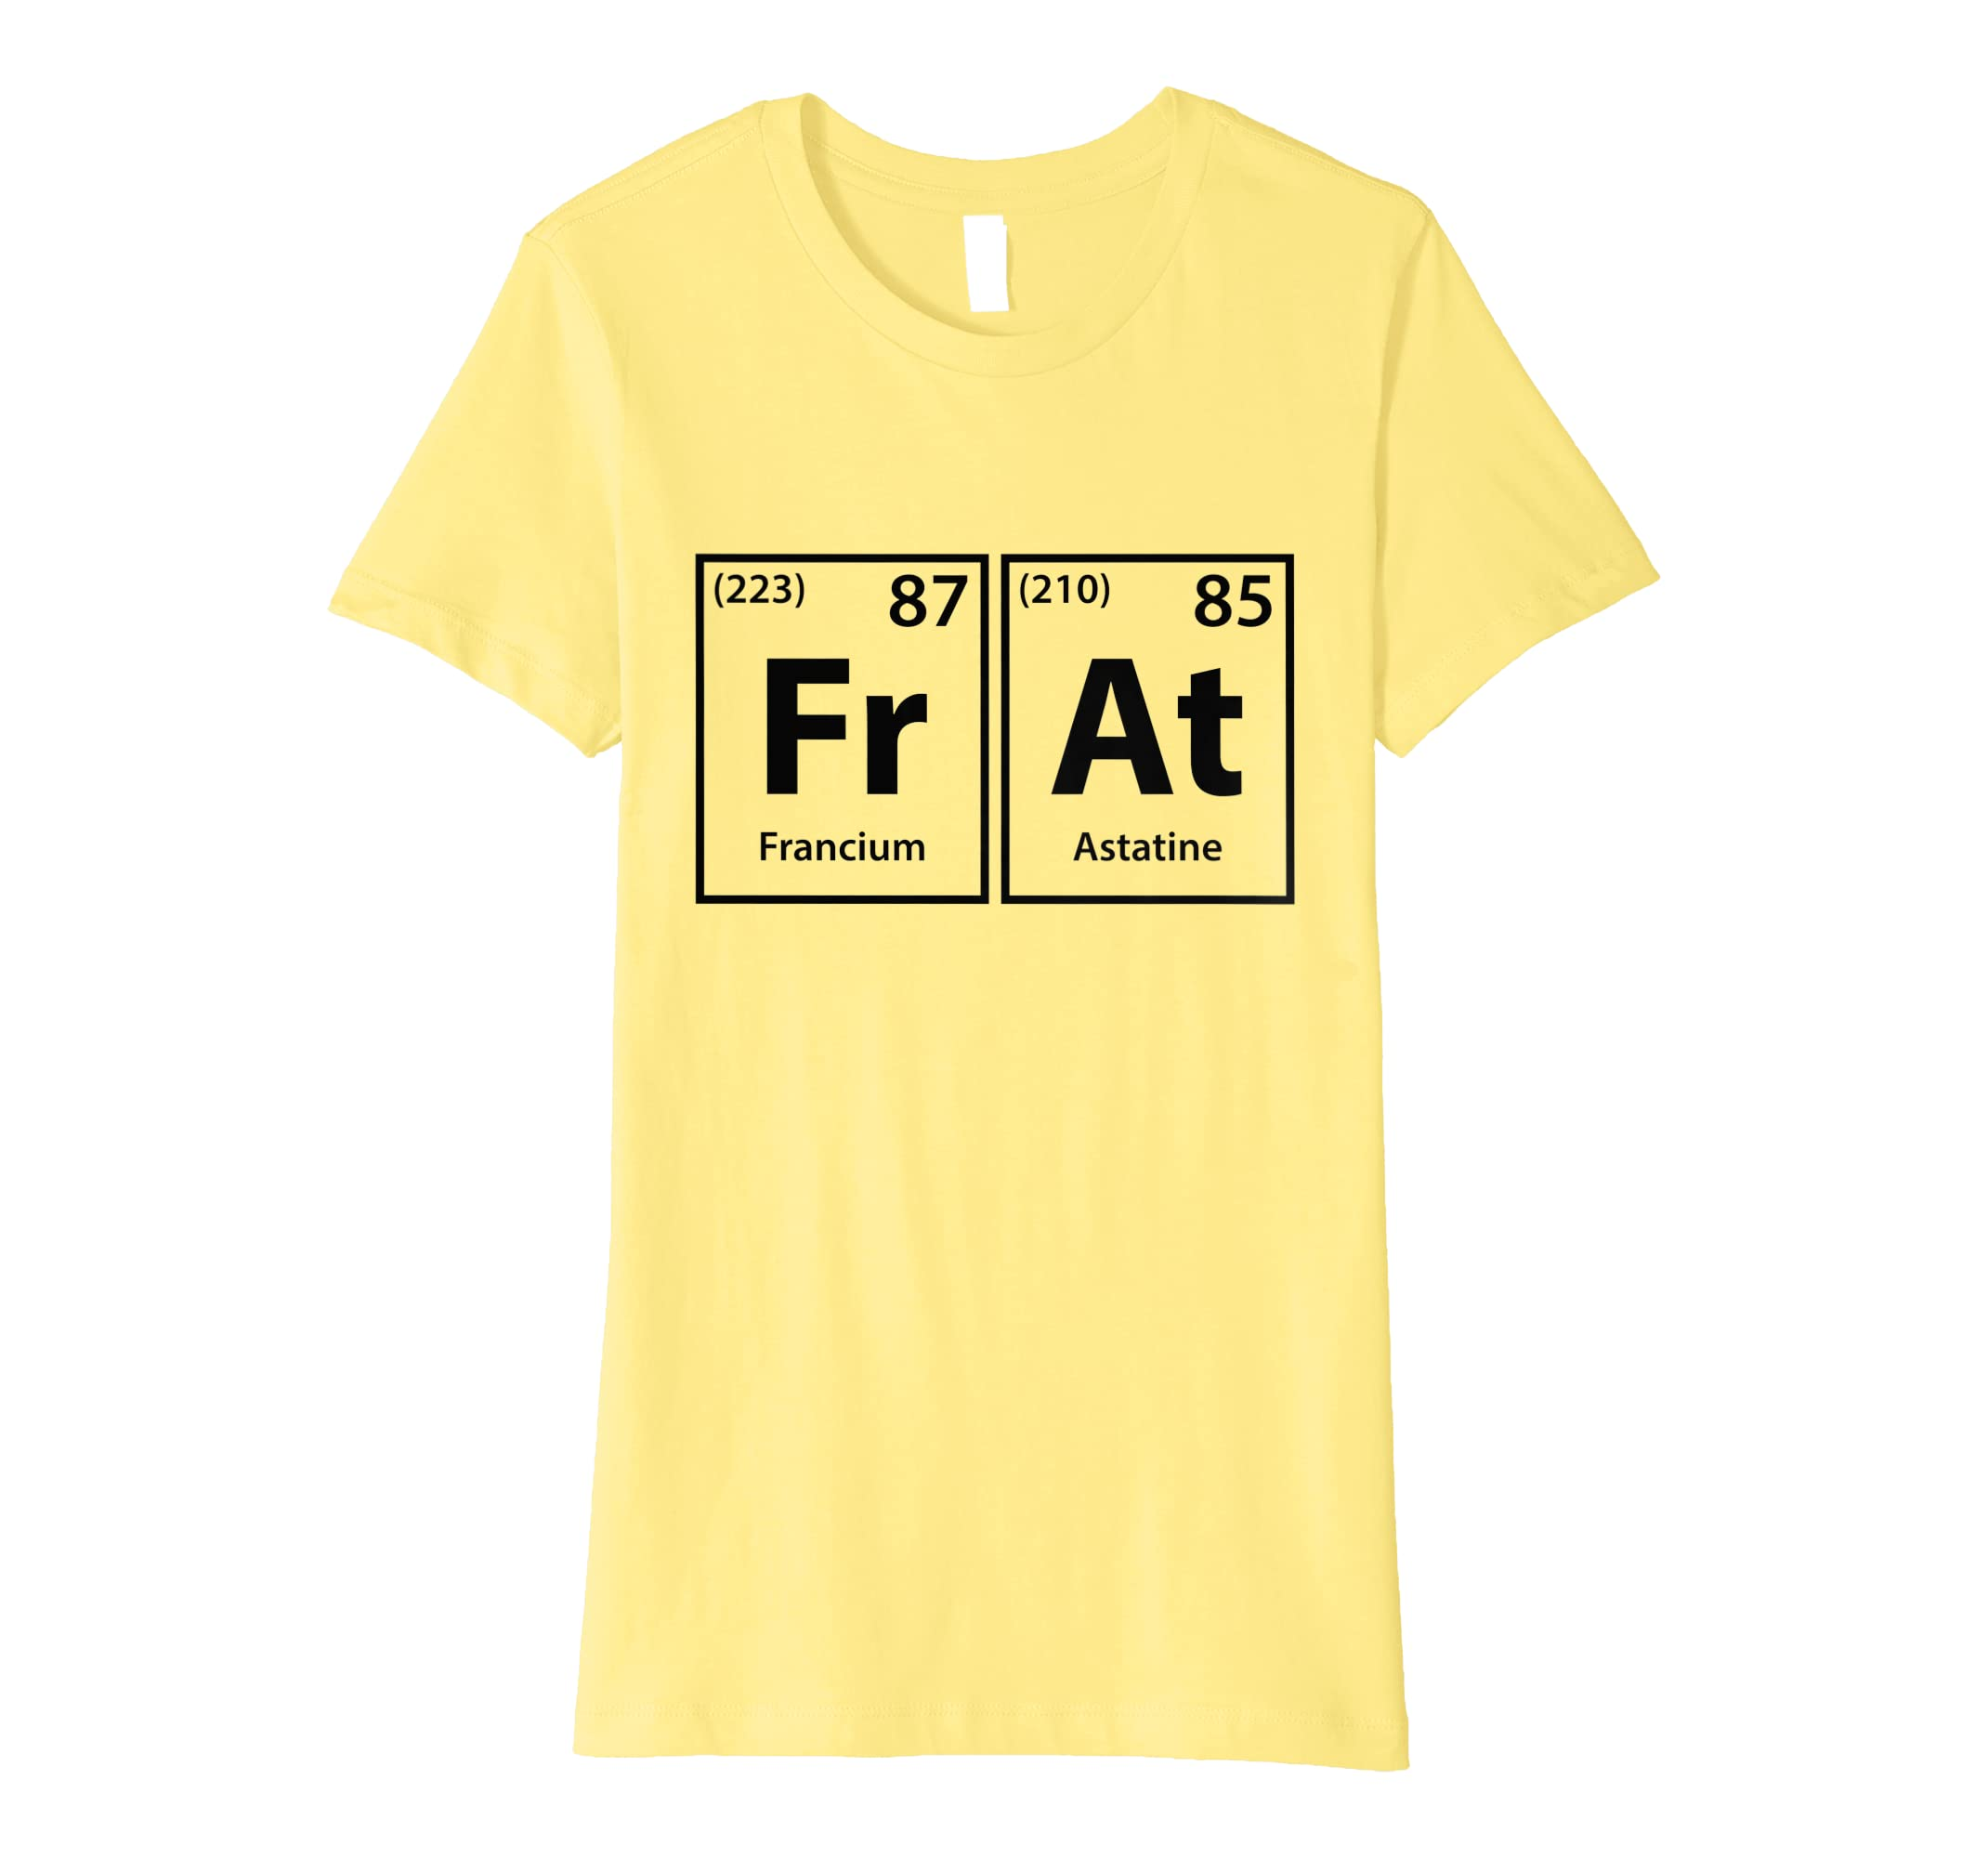 641a28608 Amazon.com: Frat Periodic Table Elements Spelling T-Shirt: Clothing